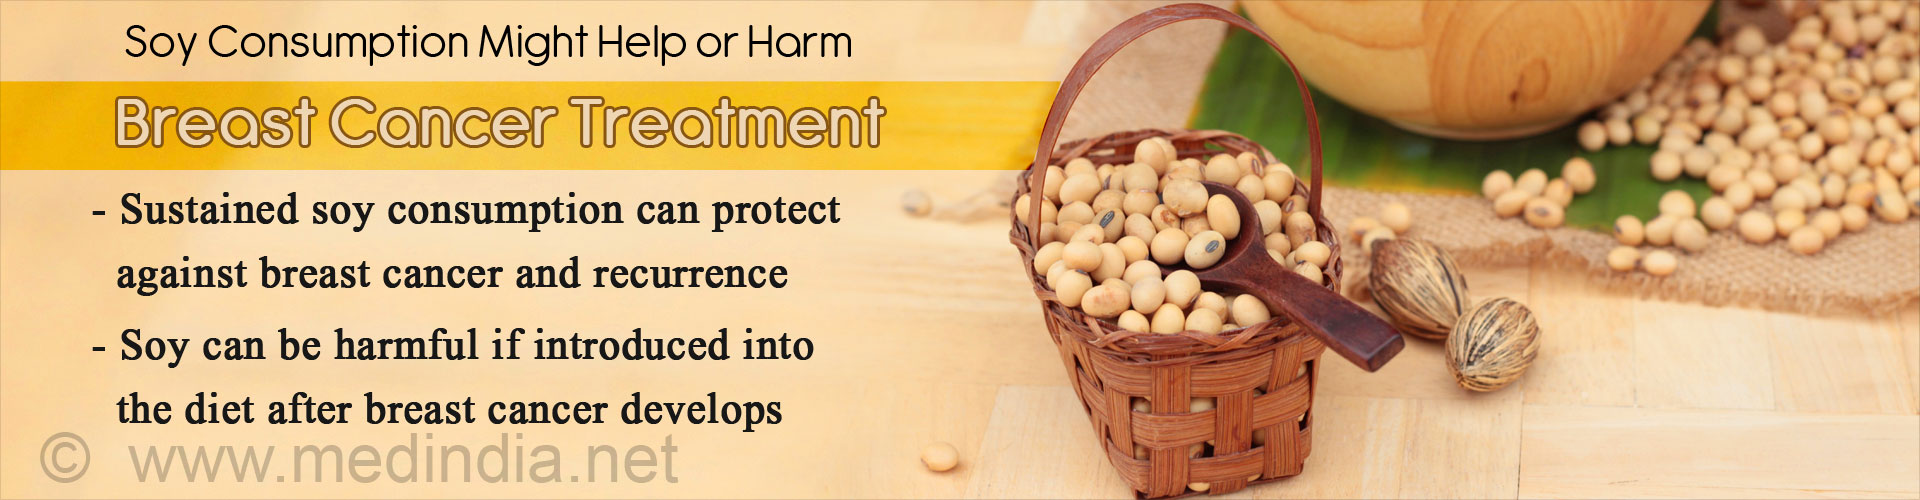 Soy Consumption Linked to Breast Cancer Treatment